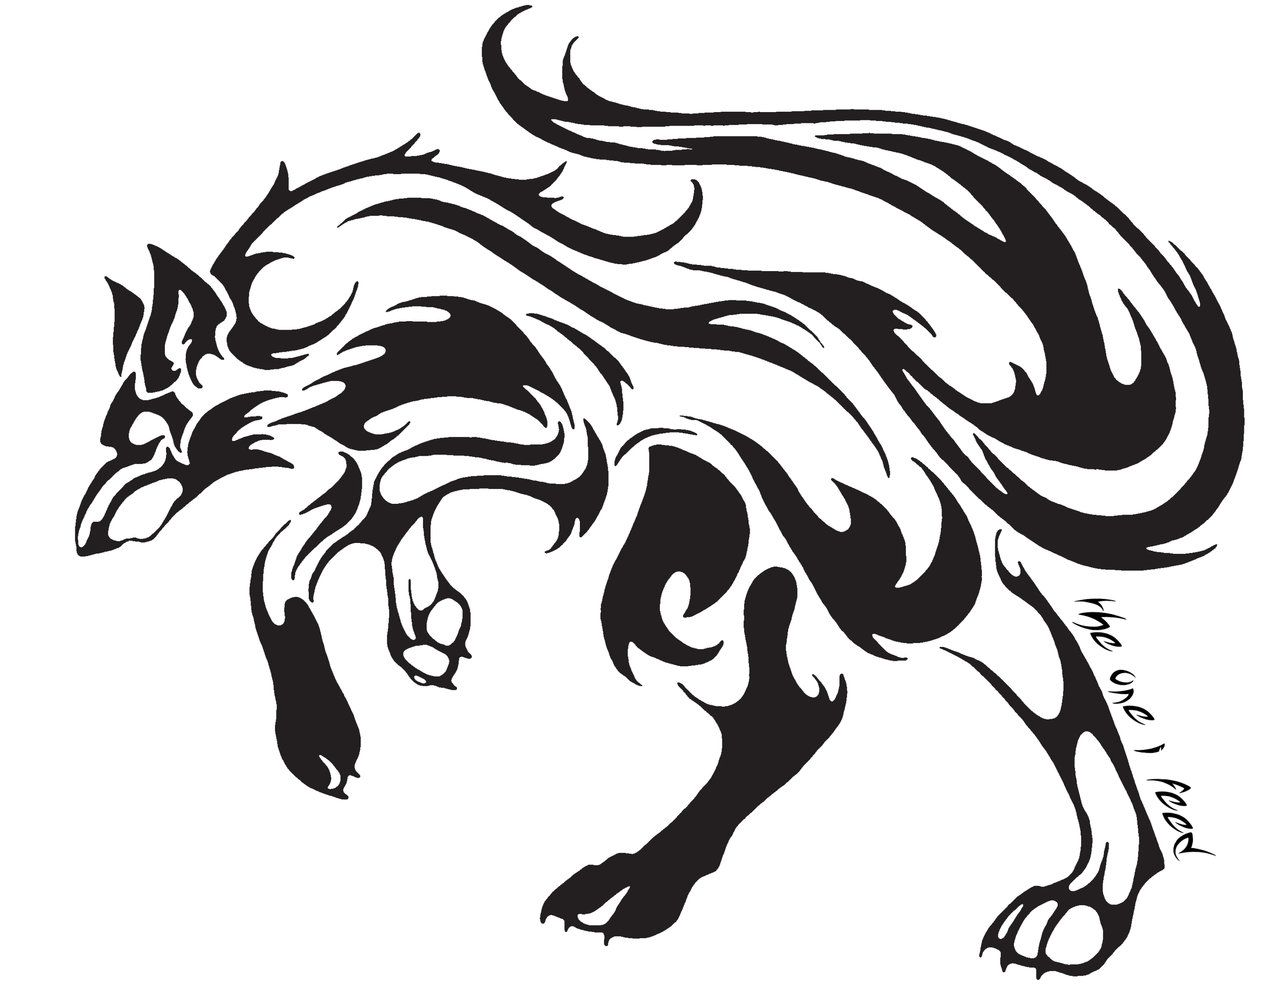 Tribal Tatoo For Love  Tribal Wolf Tattoo By Mireille Rae Designs  Interfaces Tattoo Design